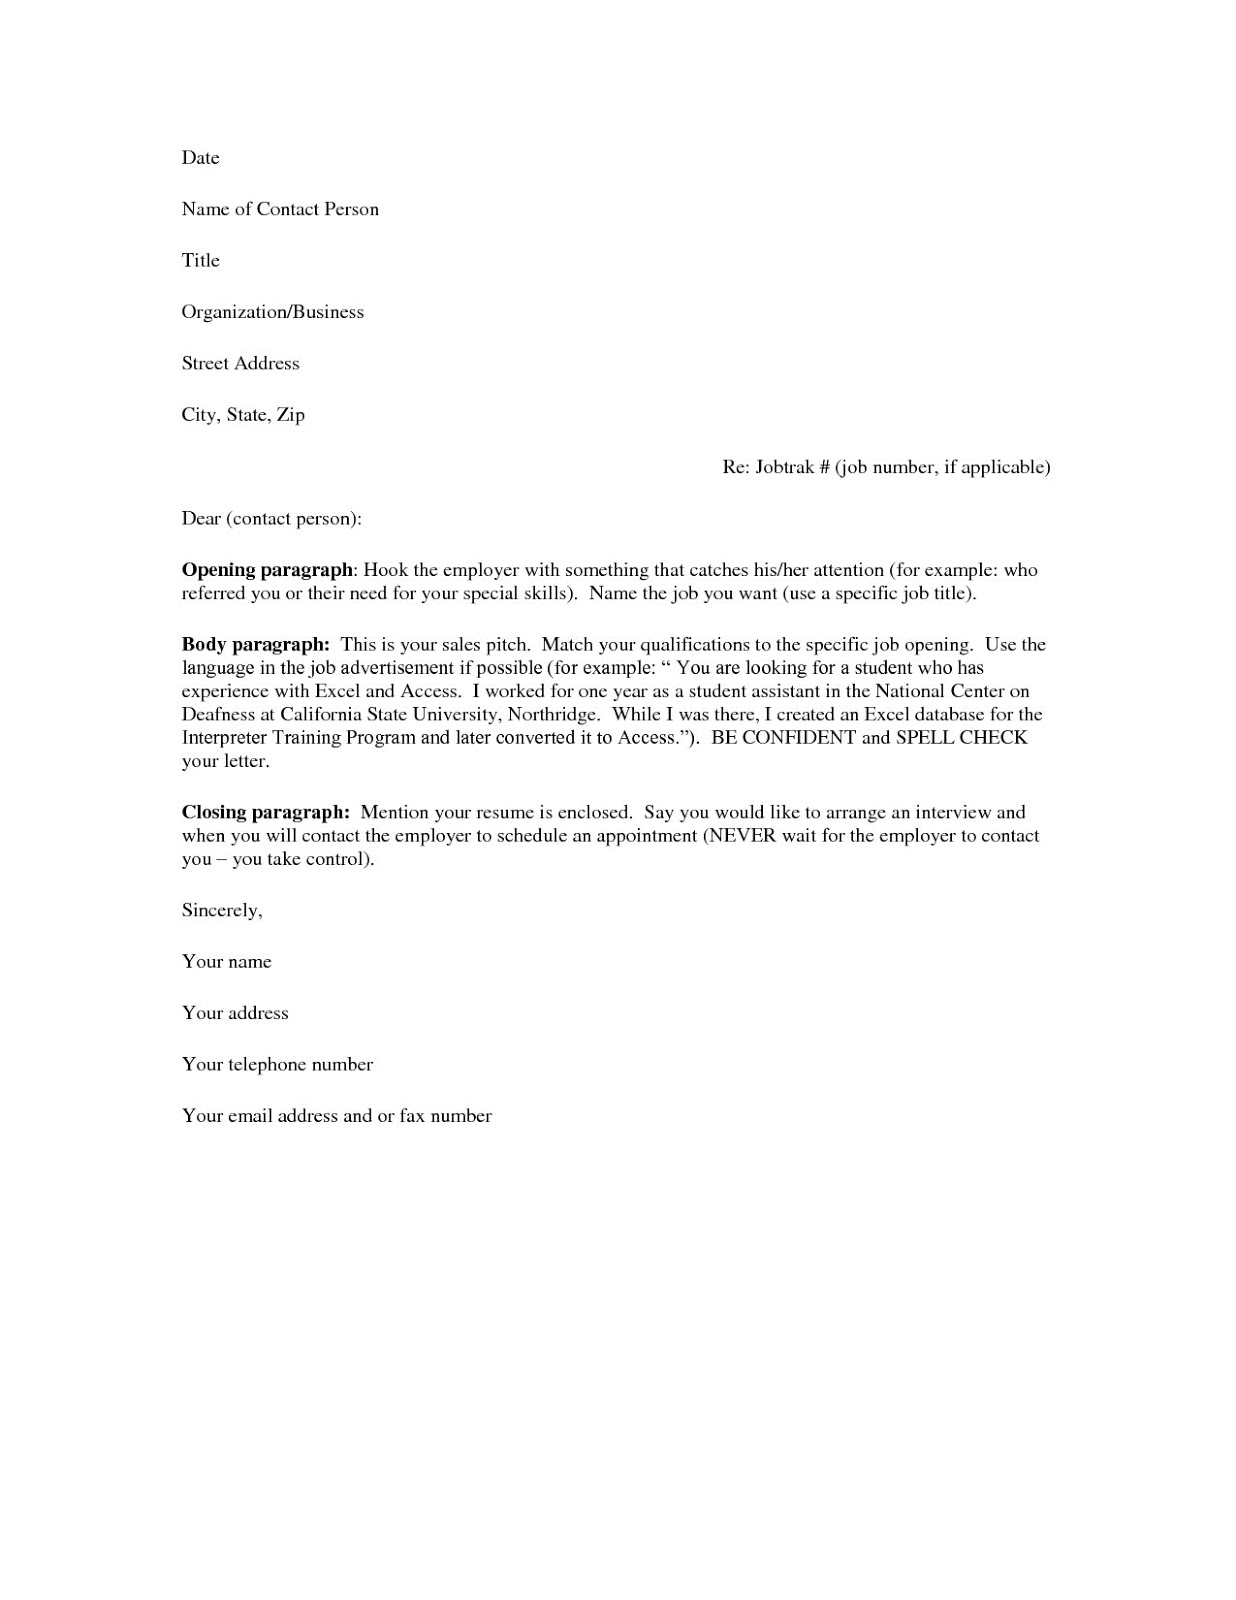 Covering Letter Format For Resume Free Cover Letter Samples For Resumes Sample Resumes